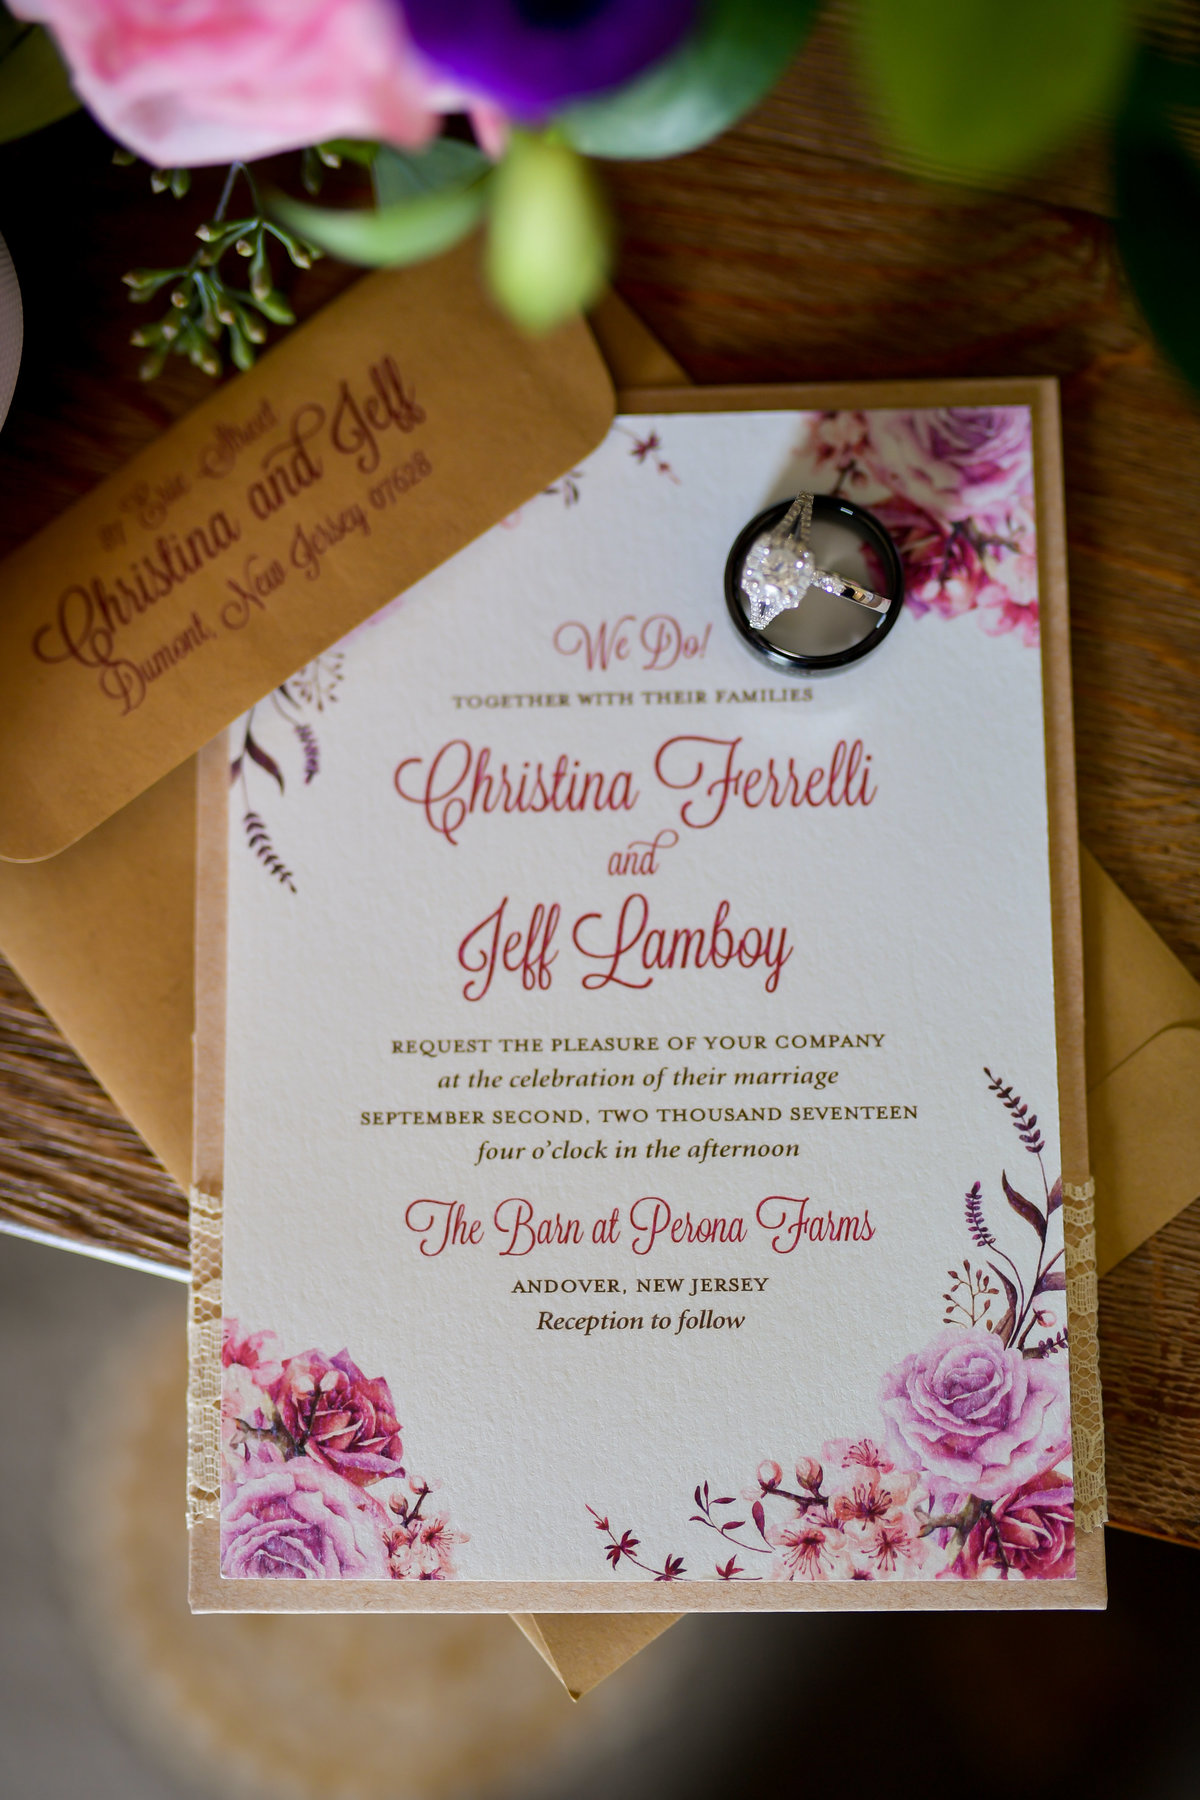 Perona Farms Barn NJ Wedding Planner